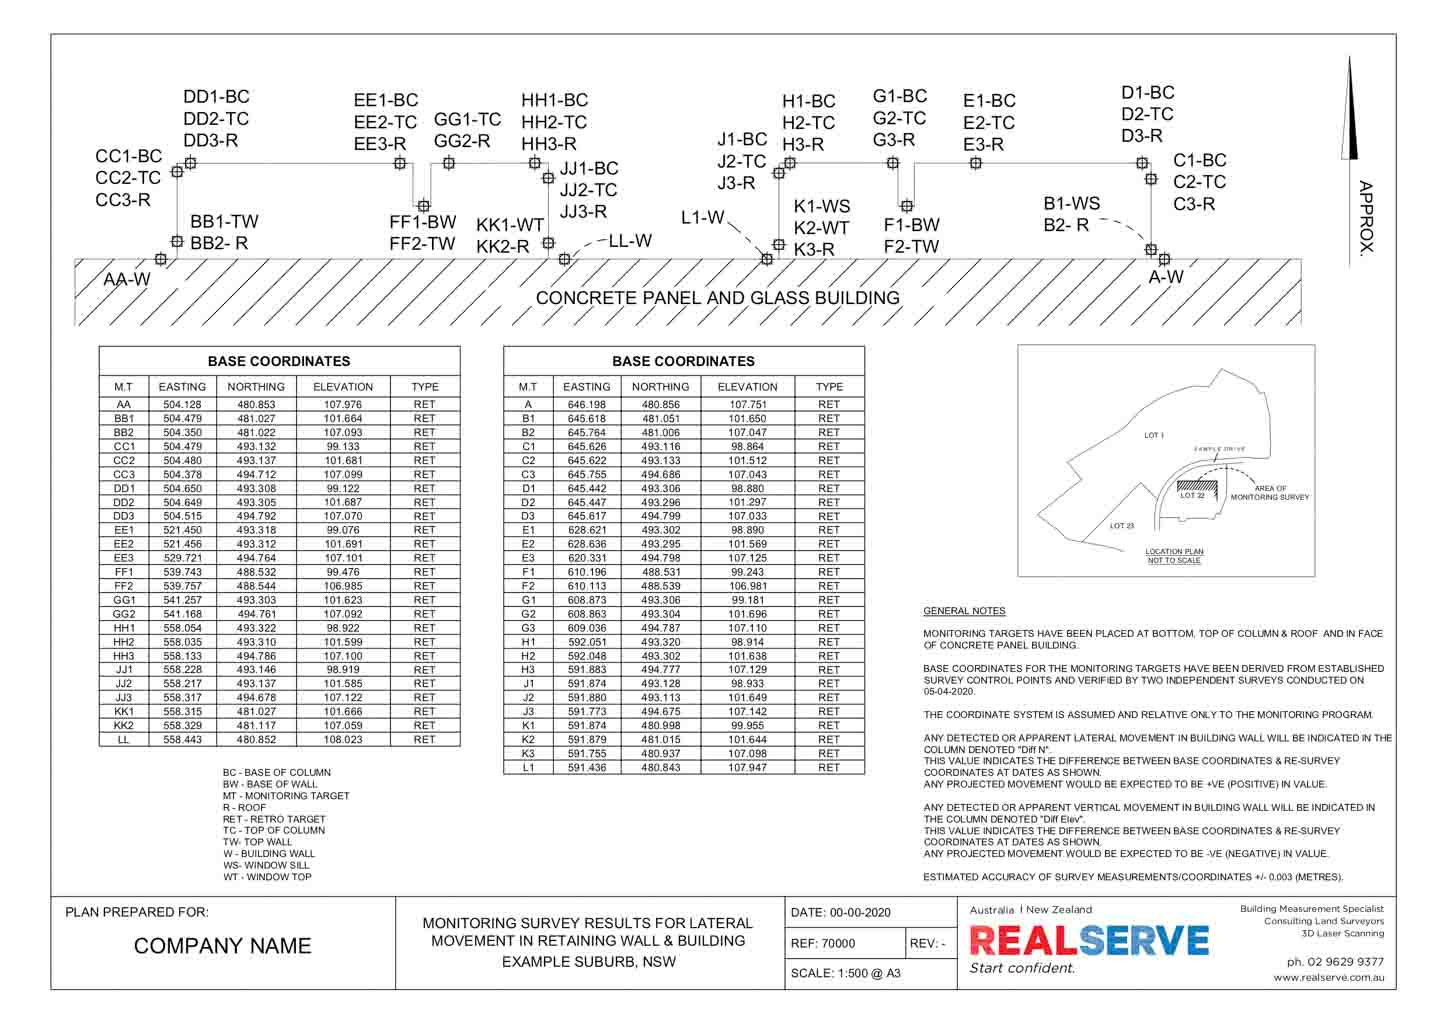 A SAMPLE OF A MOVEMENT MONITORING PLAN FOR A COMMERCIAL PROPERTY BY REALSERVE